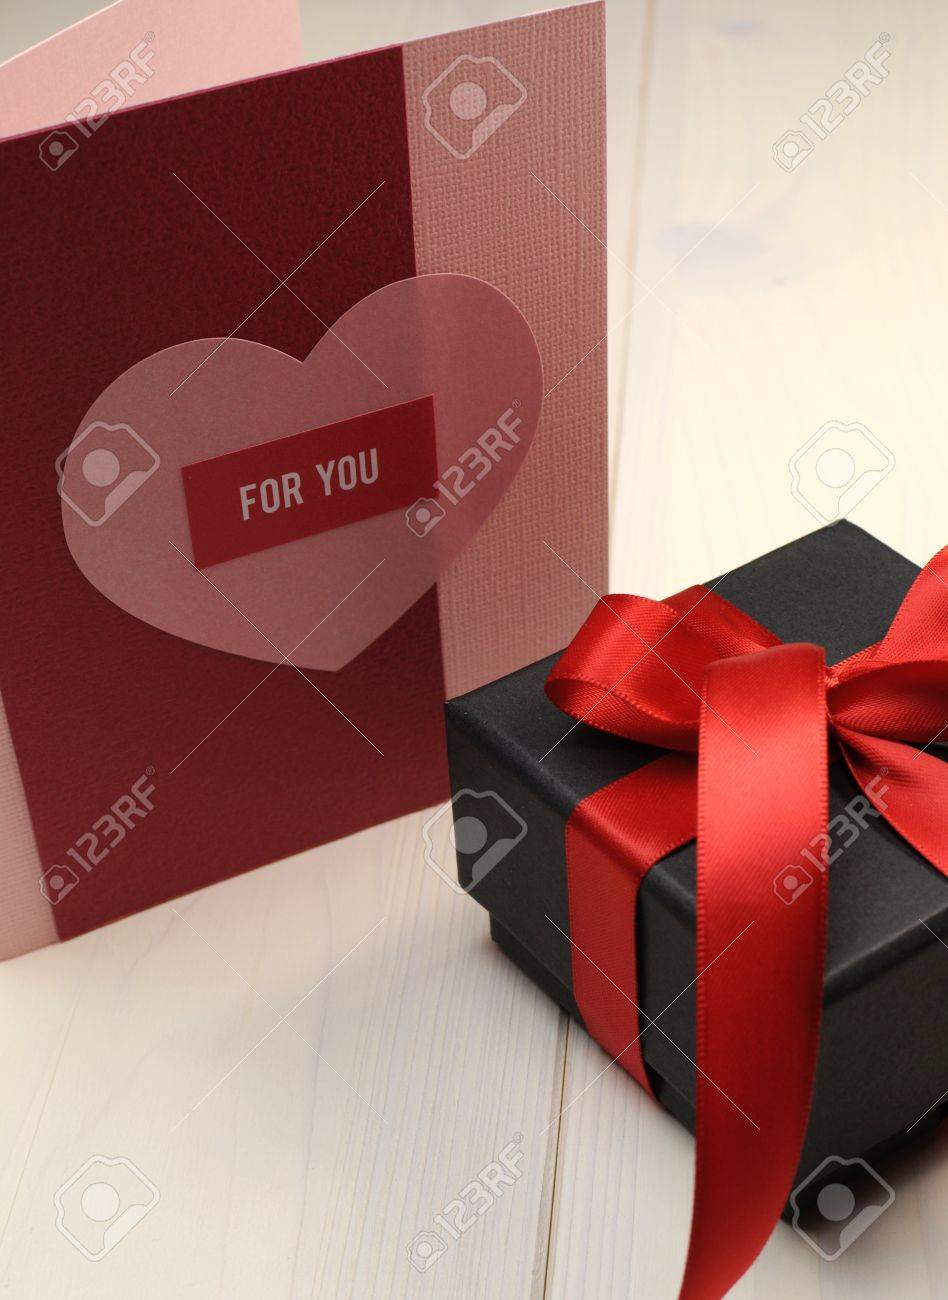 Handmade Gift Card With For You Greeting And Romantic Love Stock